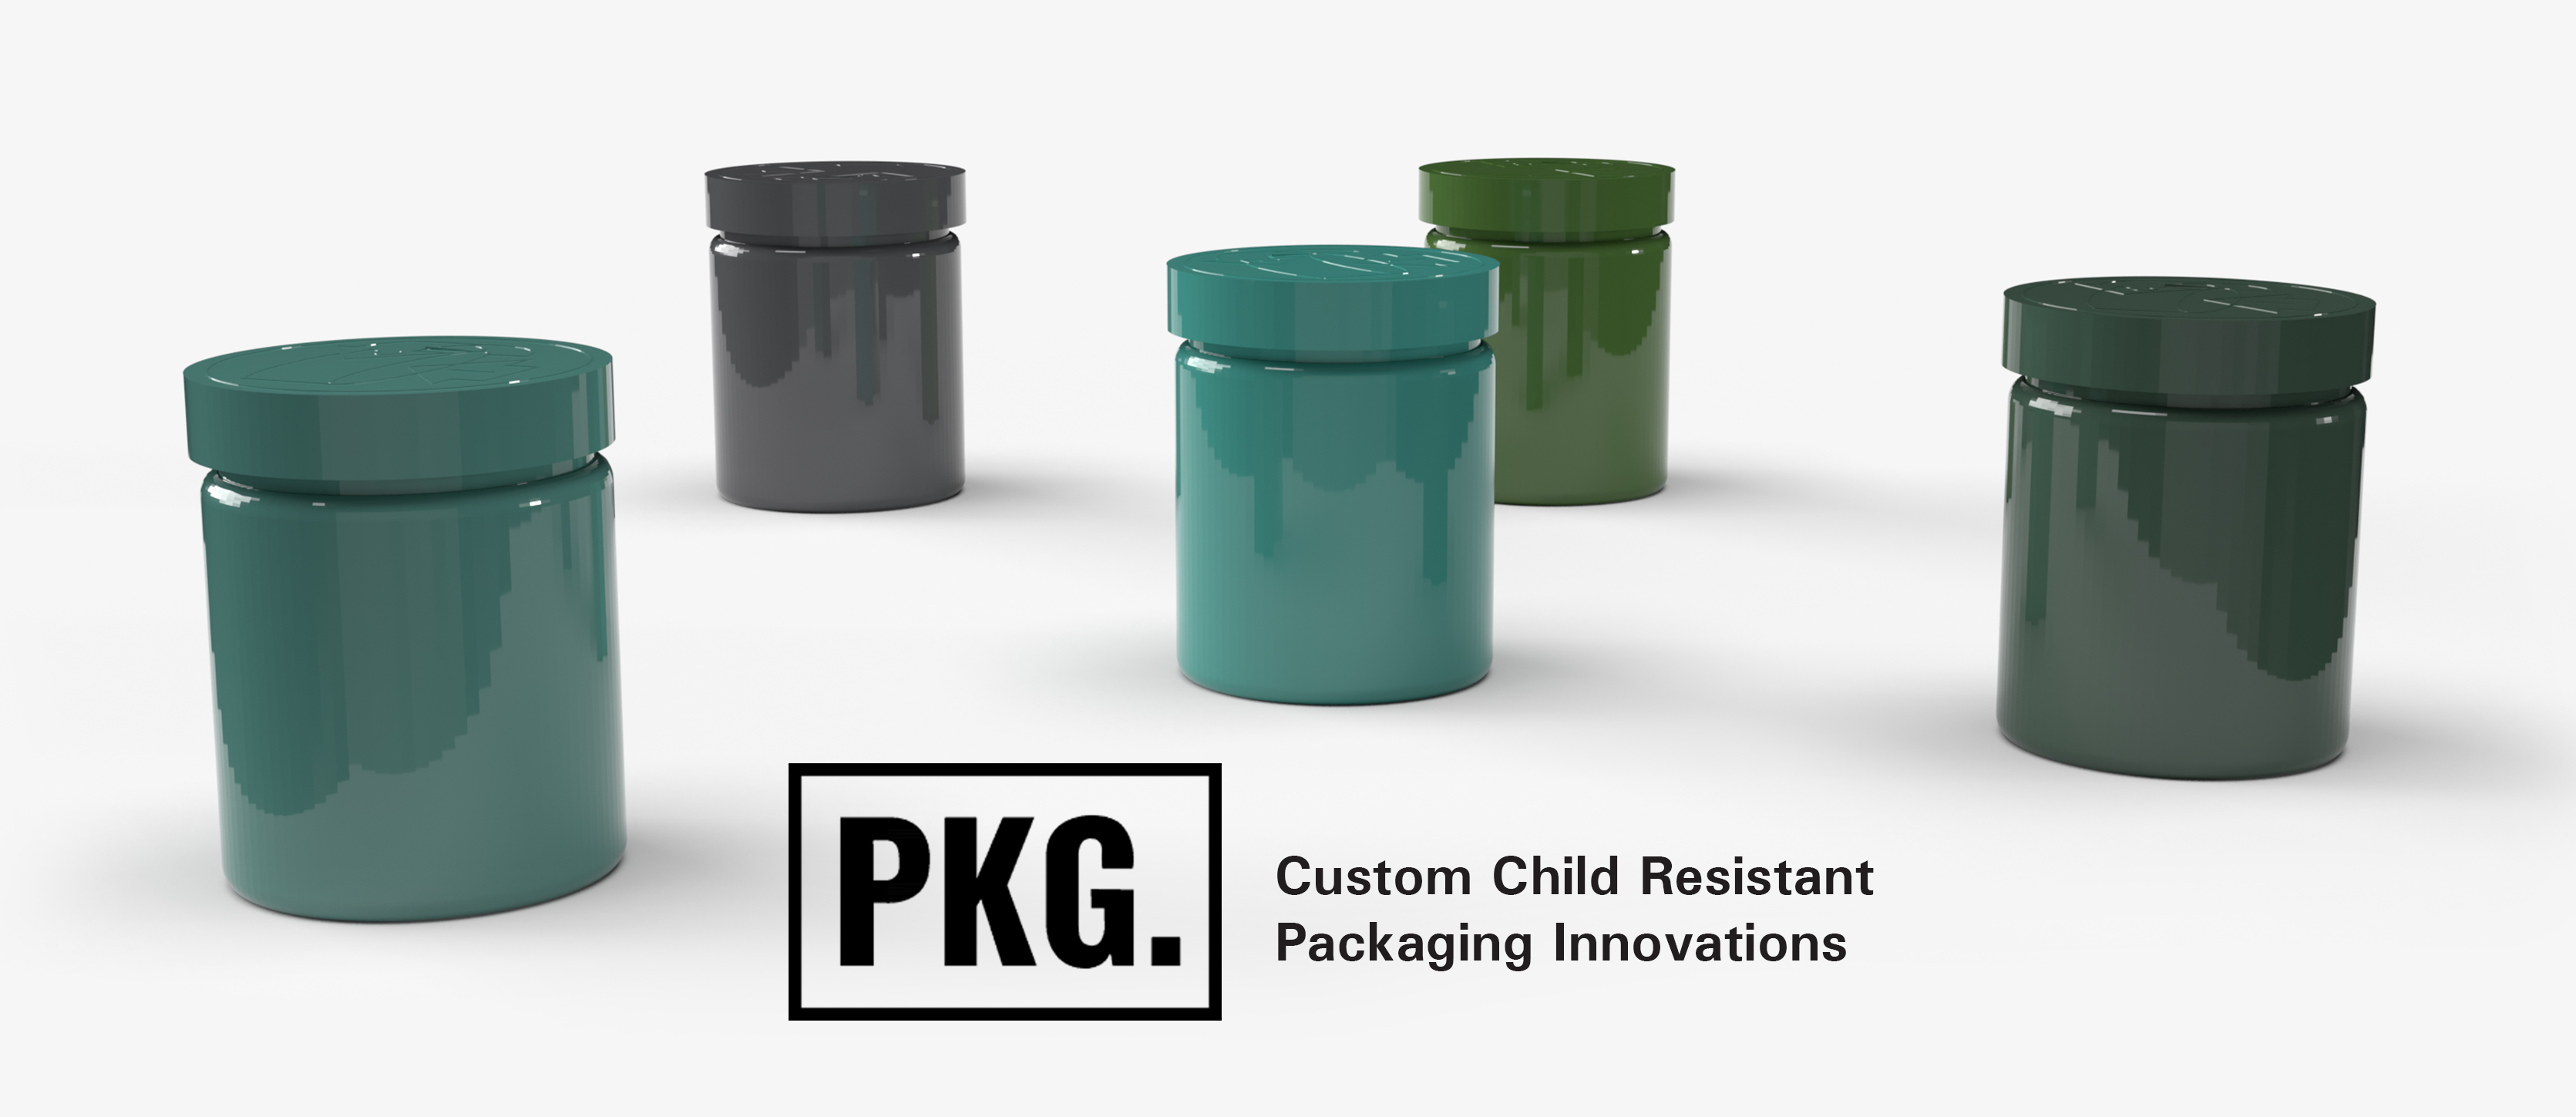 Custom Child Resistant Packaging Innovations